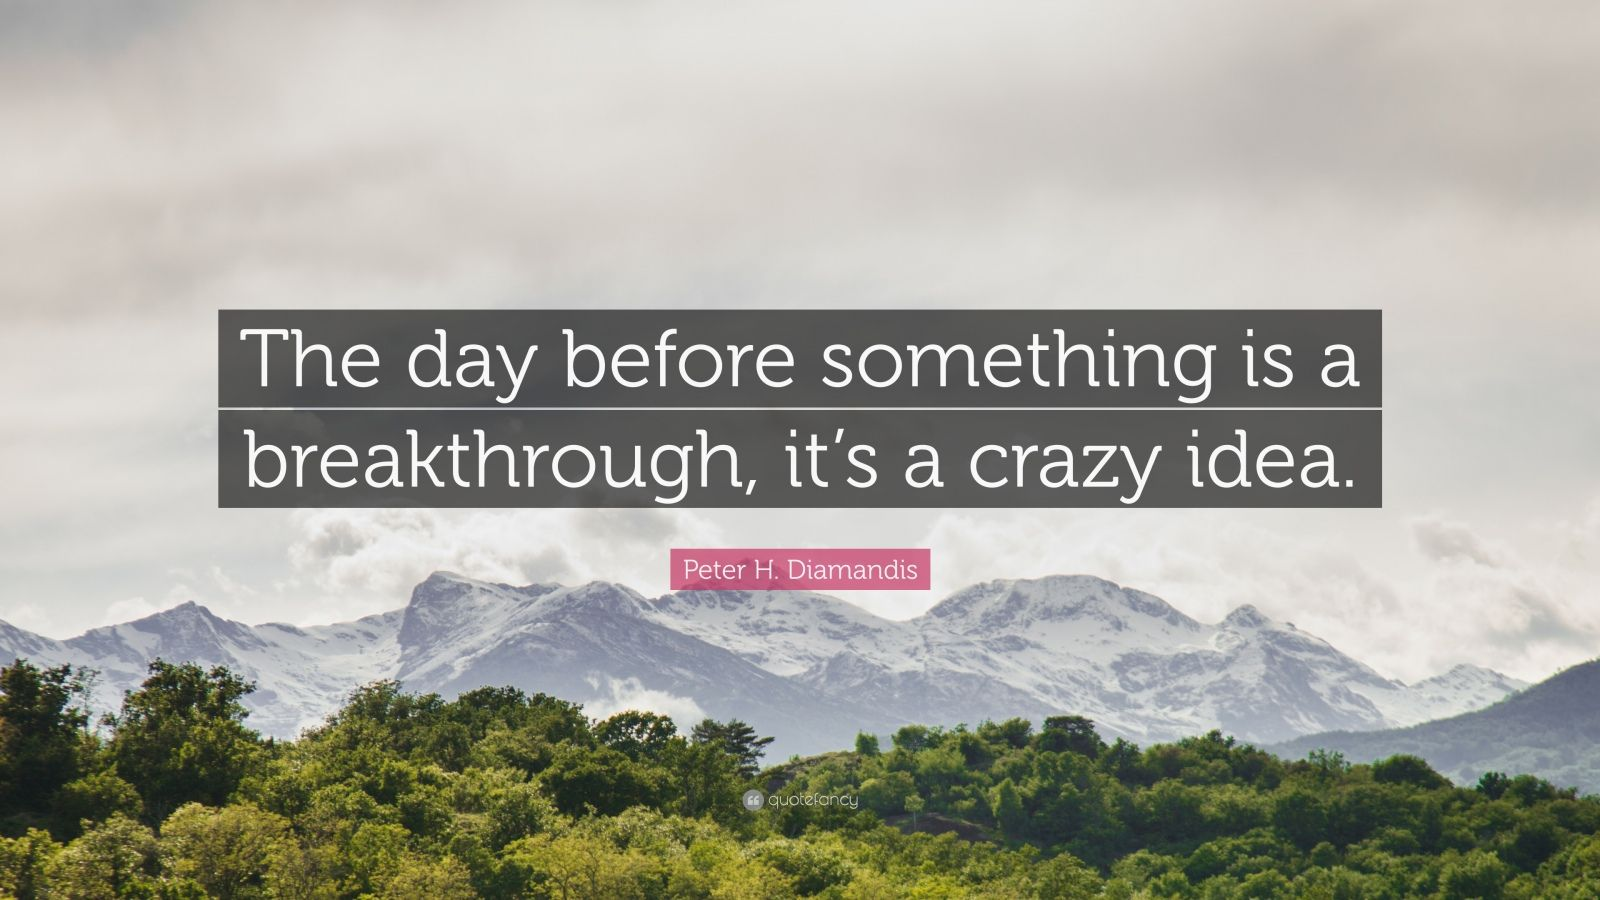 """Peter H. Diamandis Quote: """"The day before something is a breakthrough, it's a crazy idea."""""""